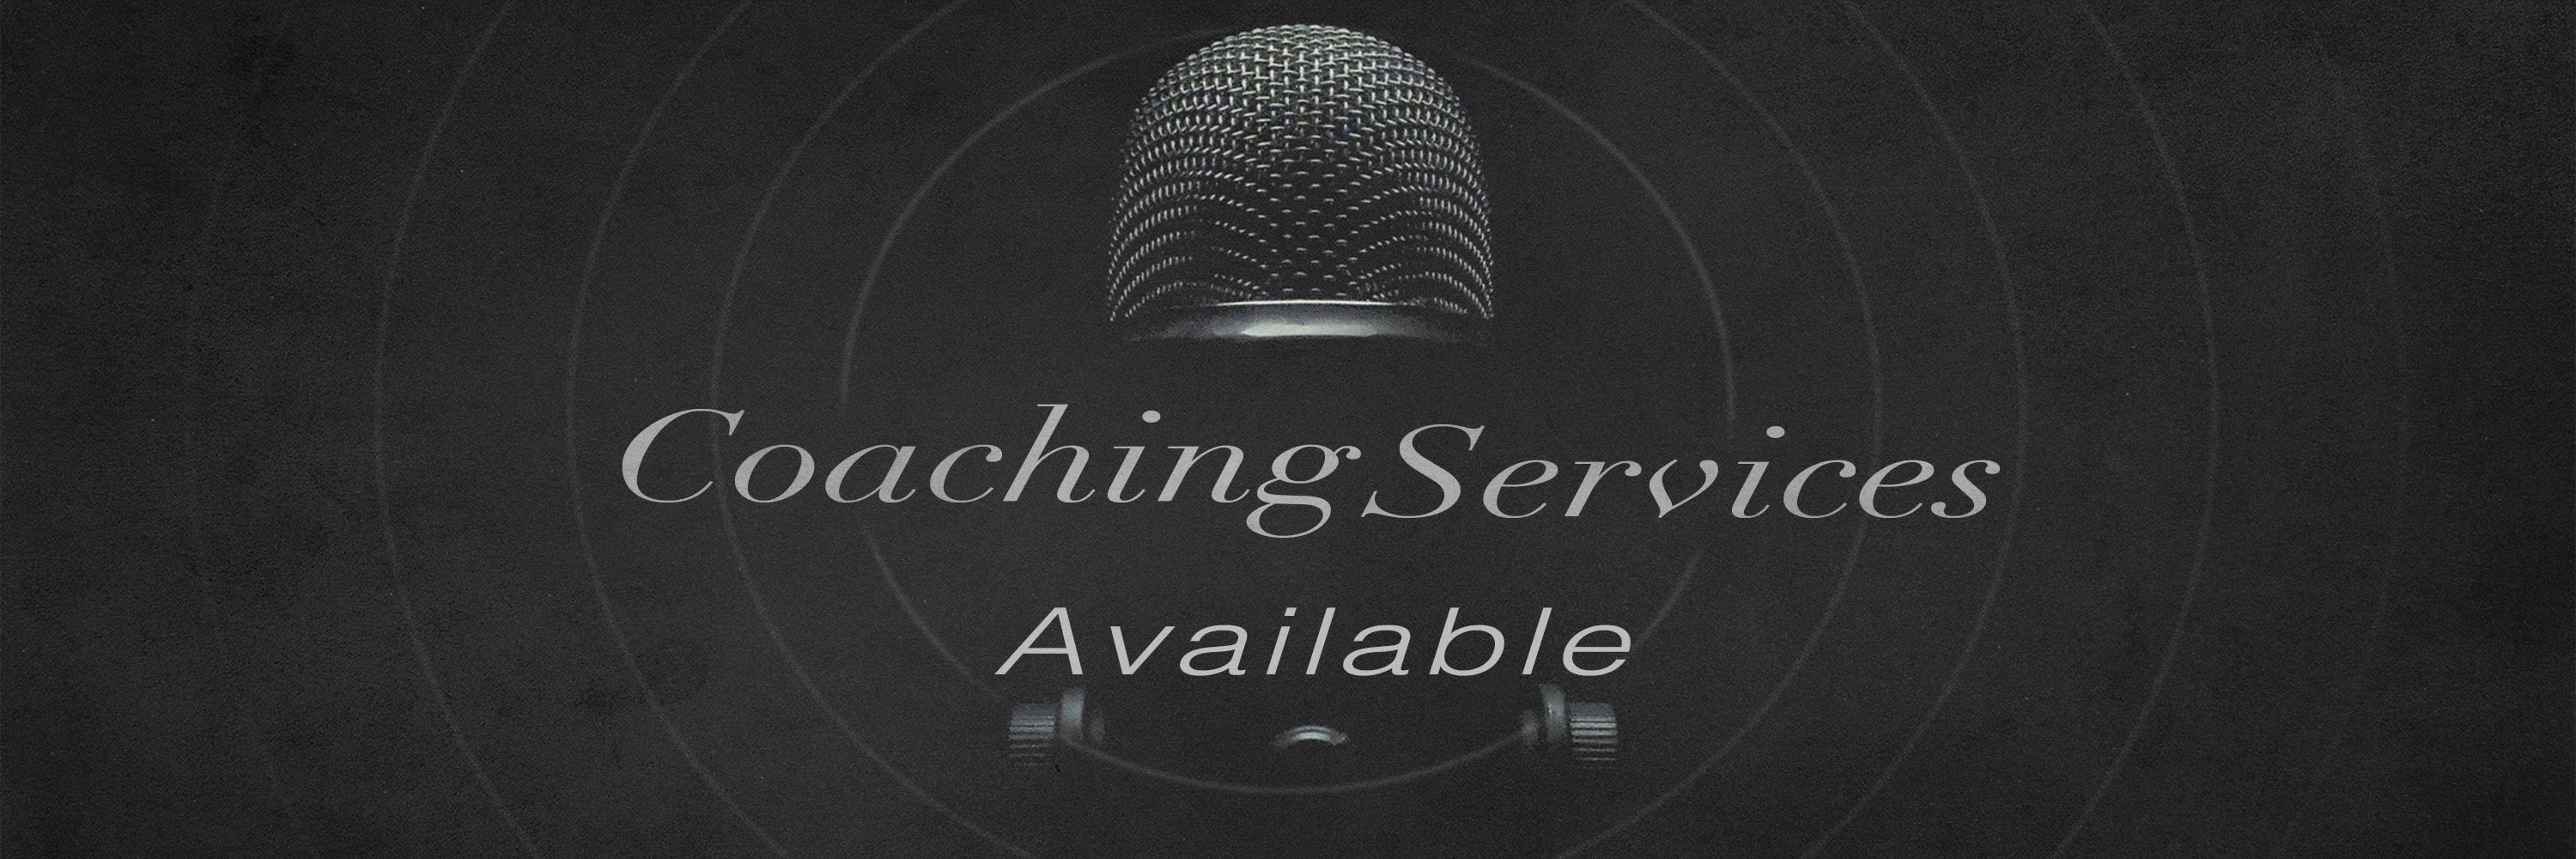 Coaching Services Available